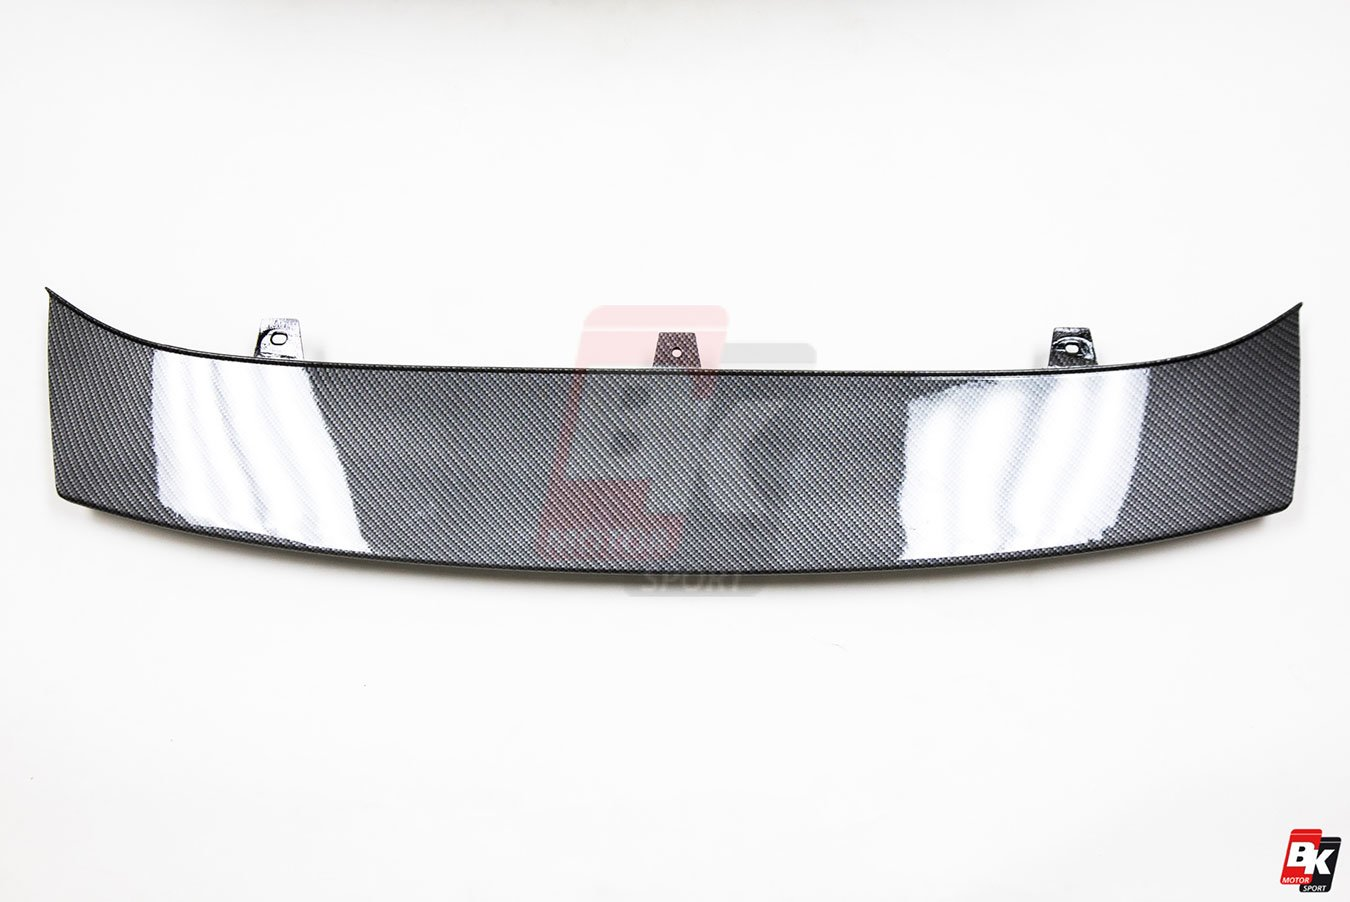 BKM Front Bumper Kit with Front Grille (RS Style), fits Audi A6/S6 C7.0